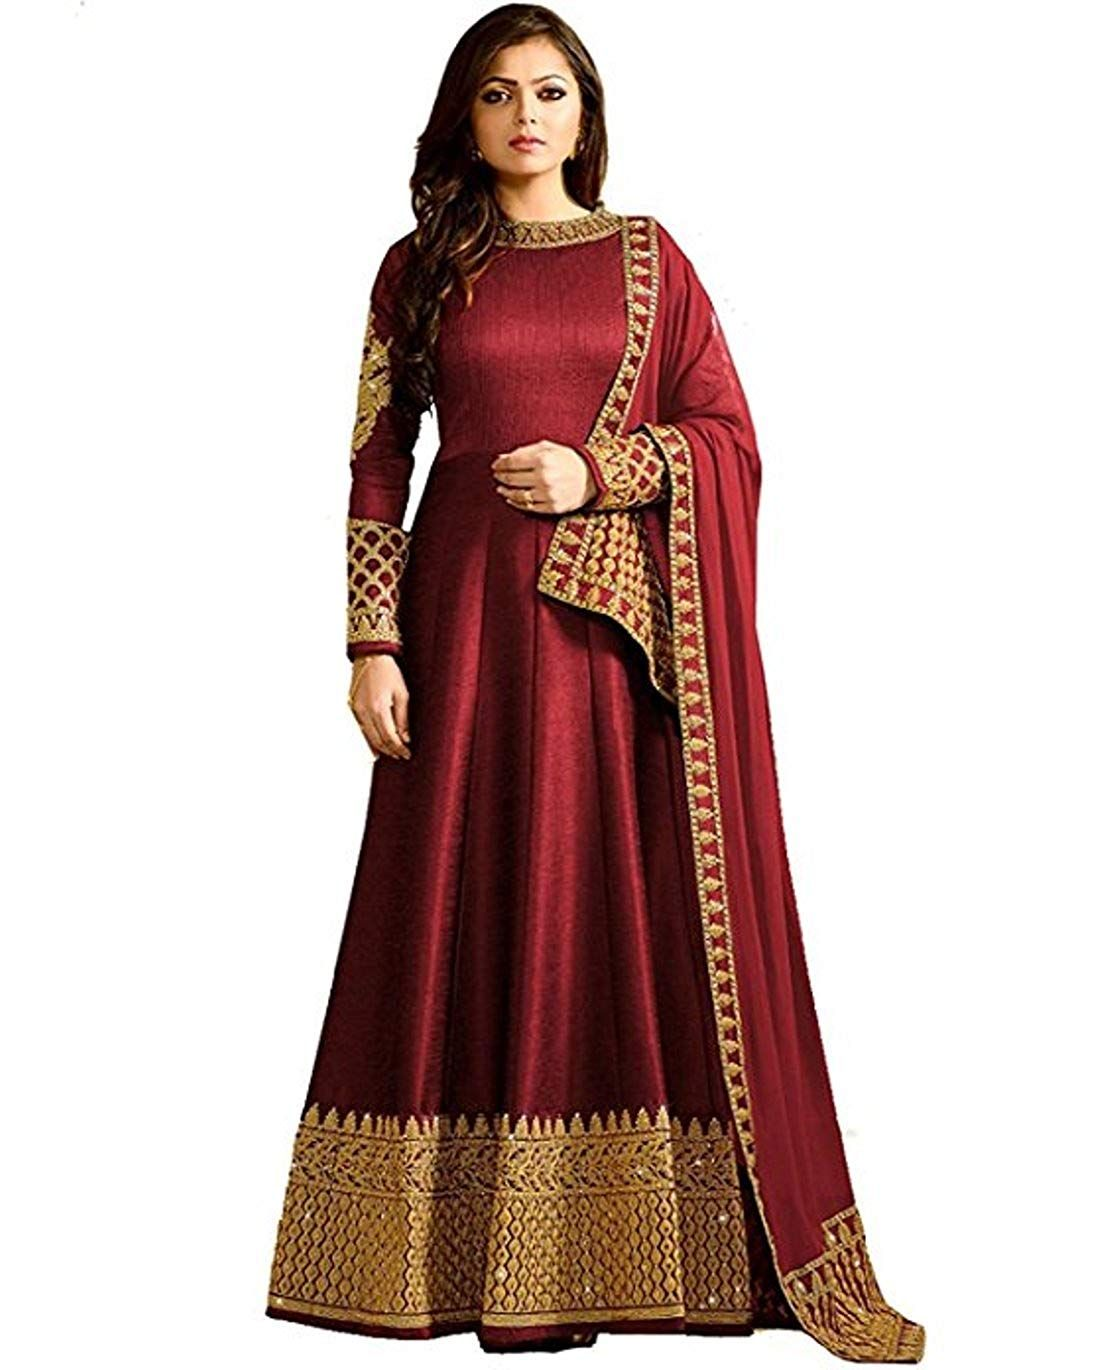 Womenus latest heavy red color embroidered wedding wear festival